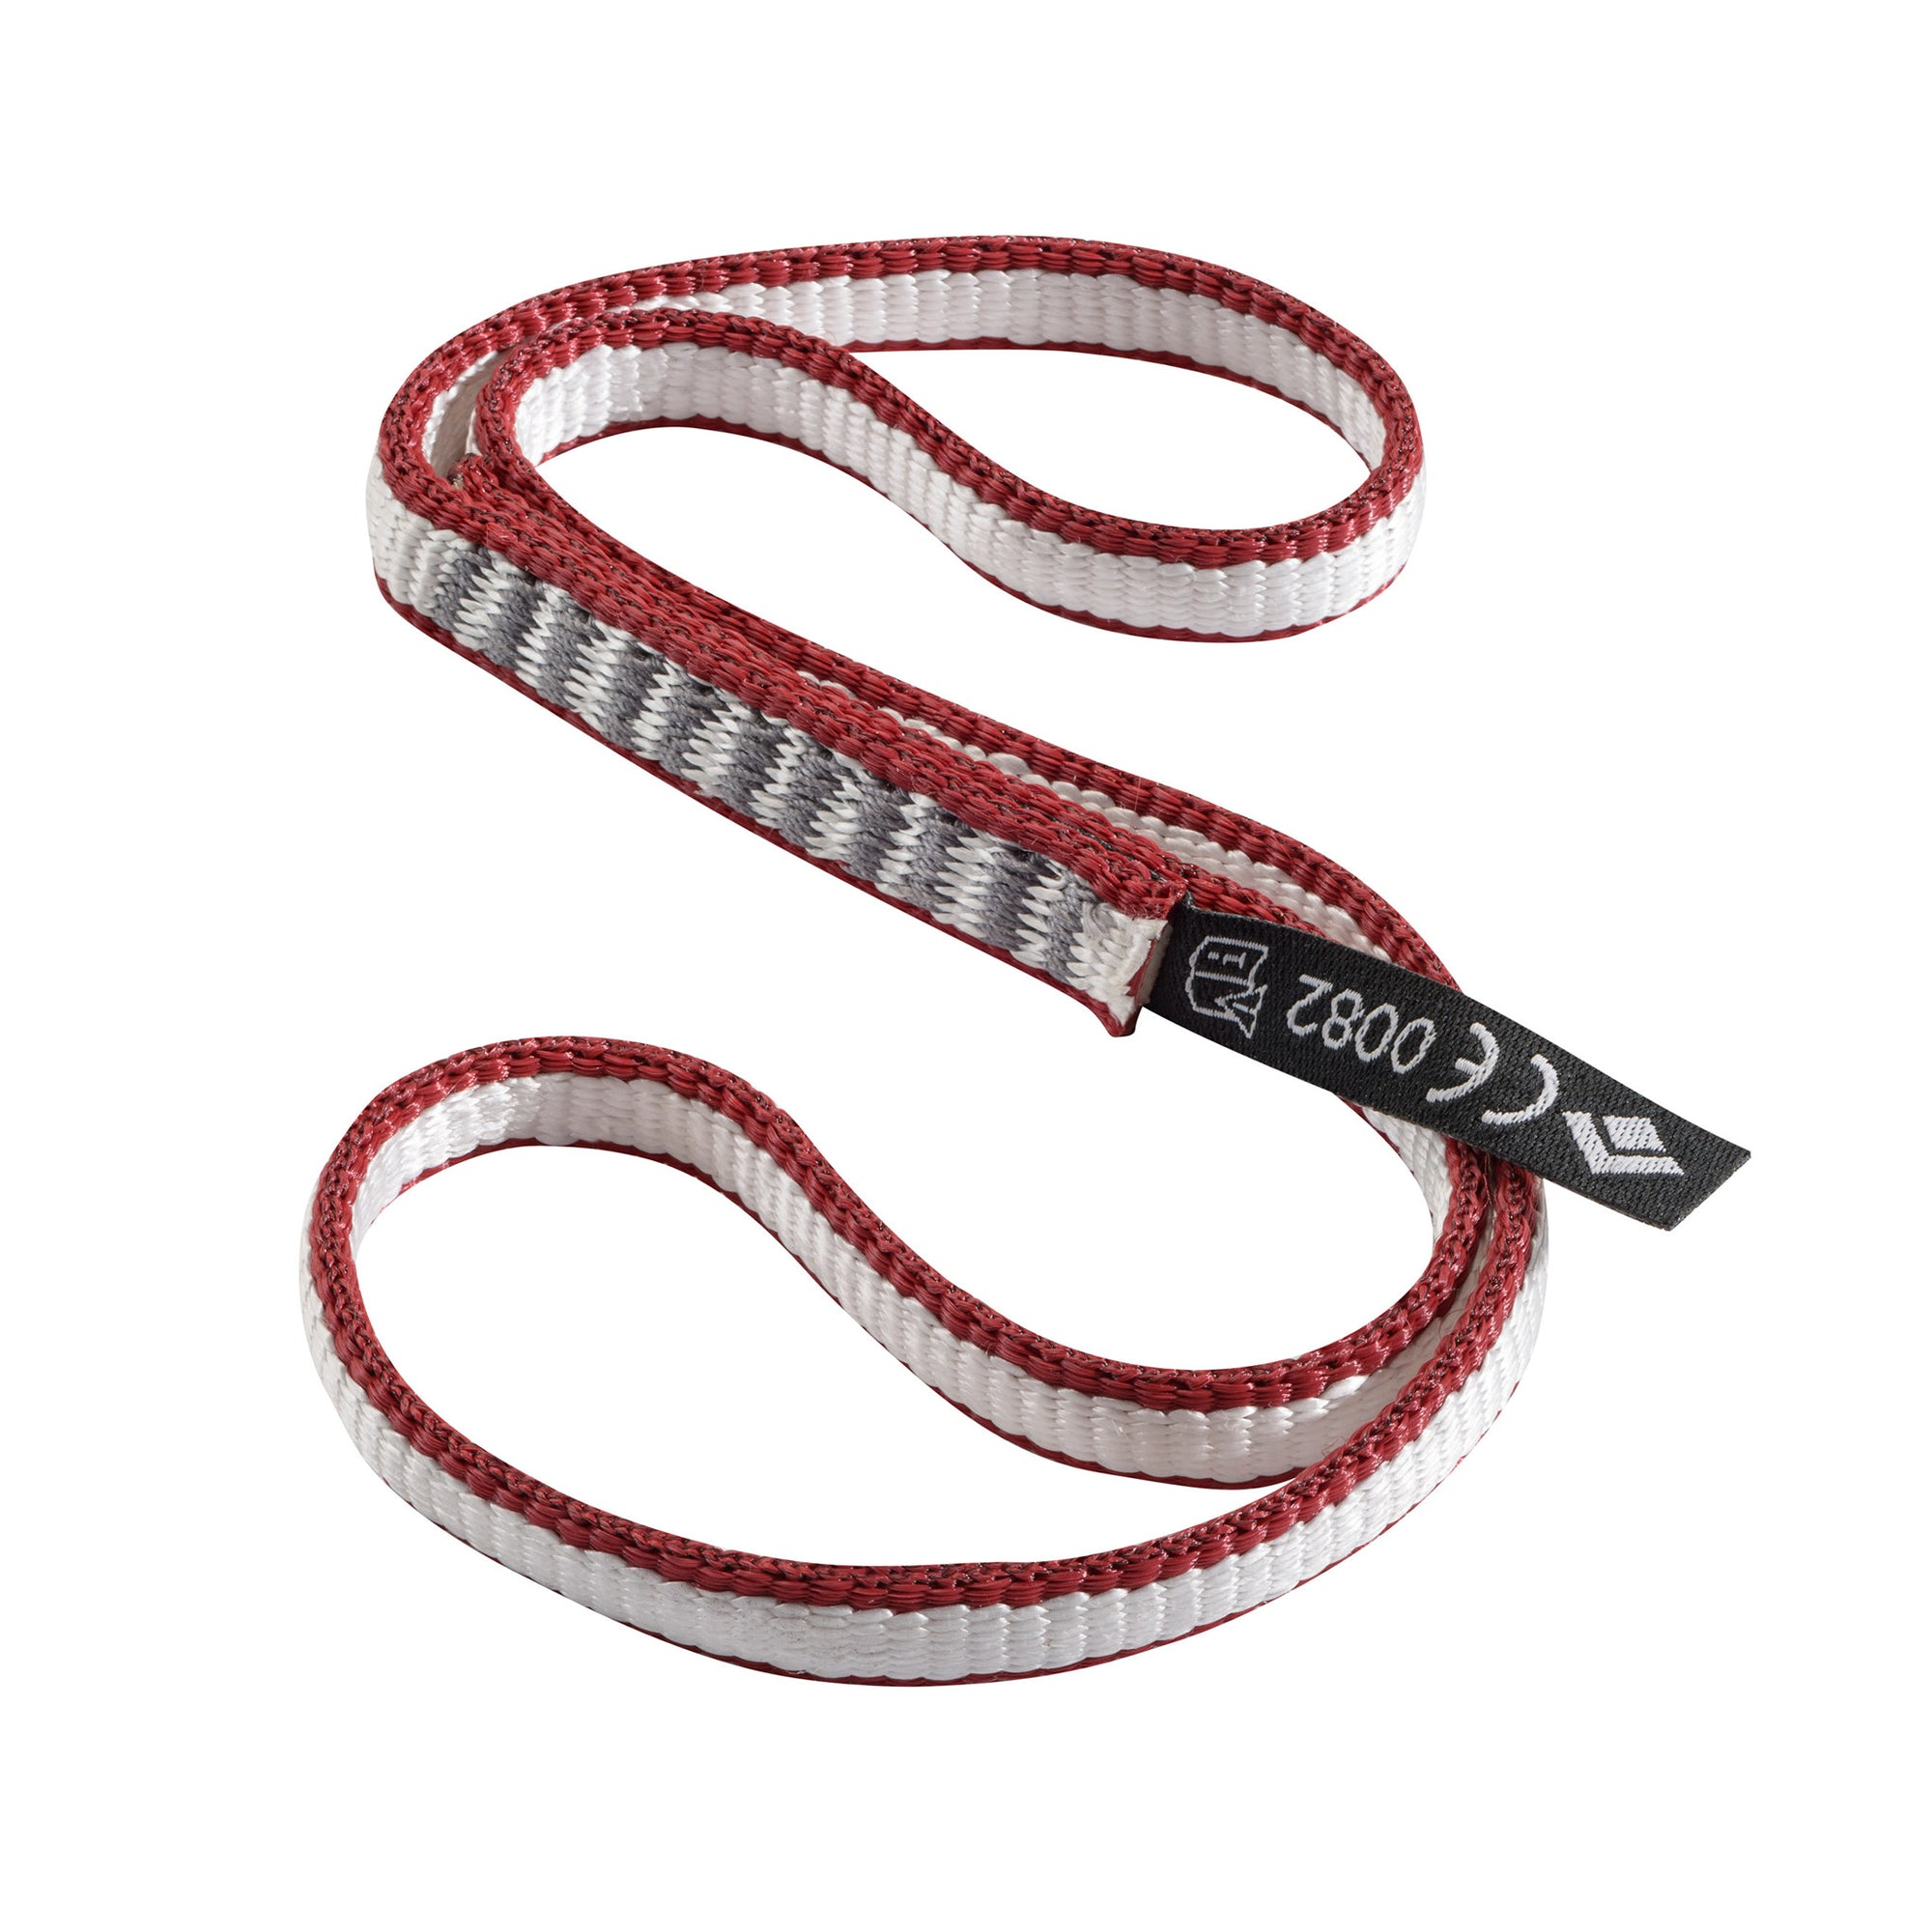 a photo of a black diamond 10mm dynex runner in the 30 cm red size